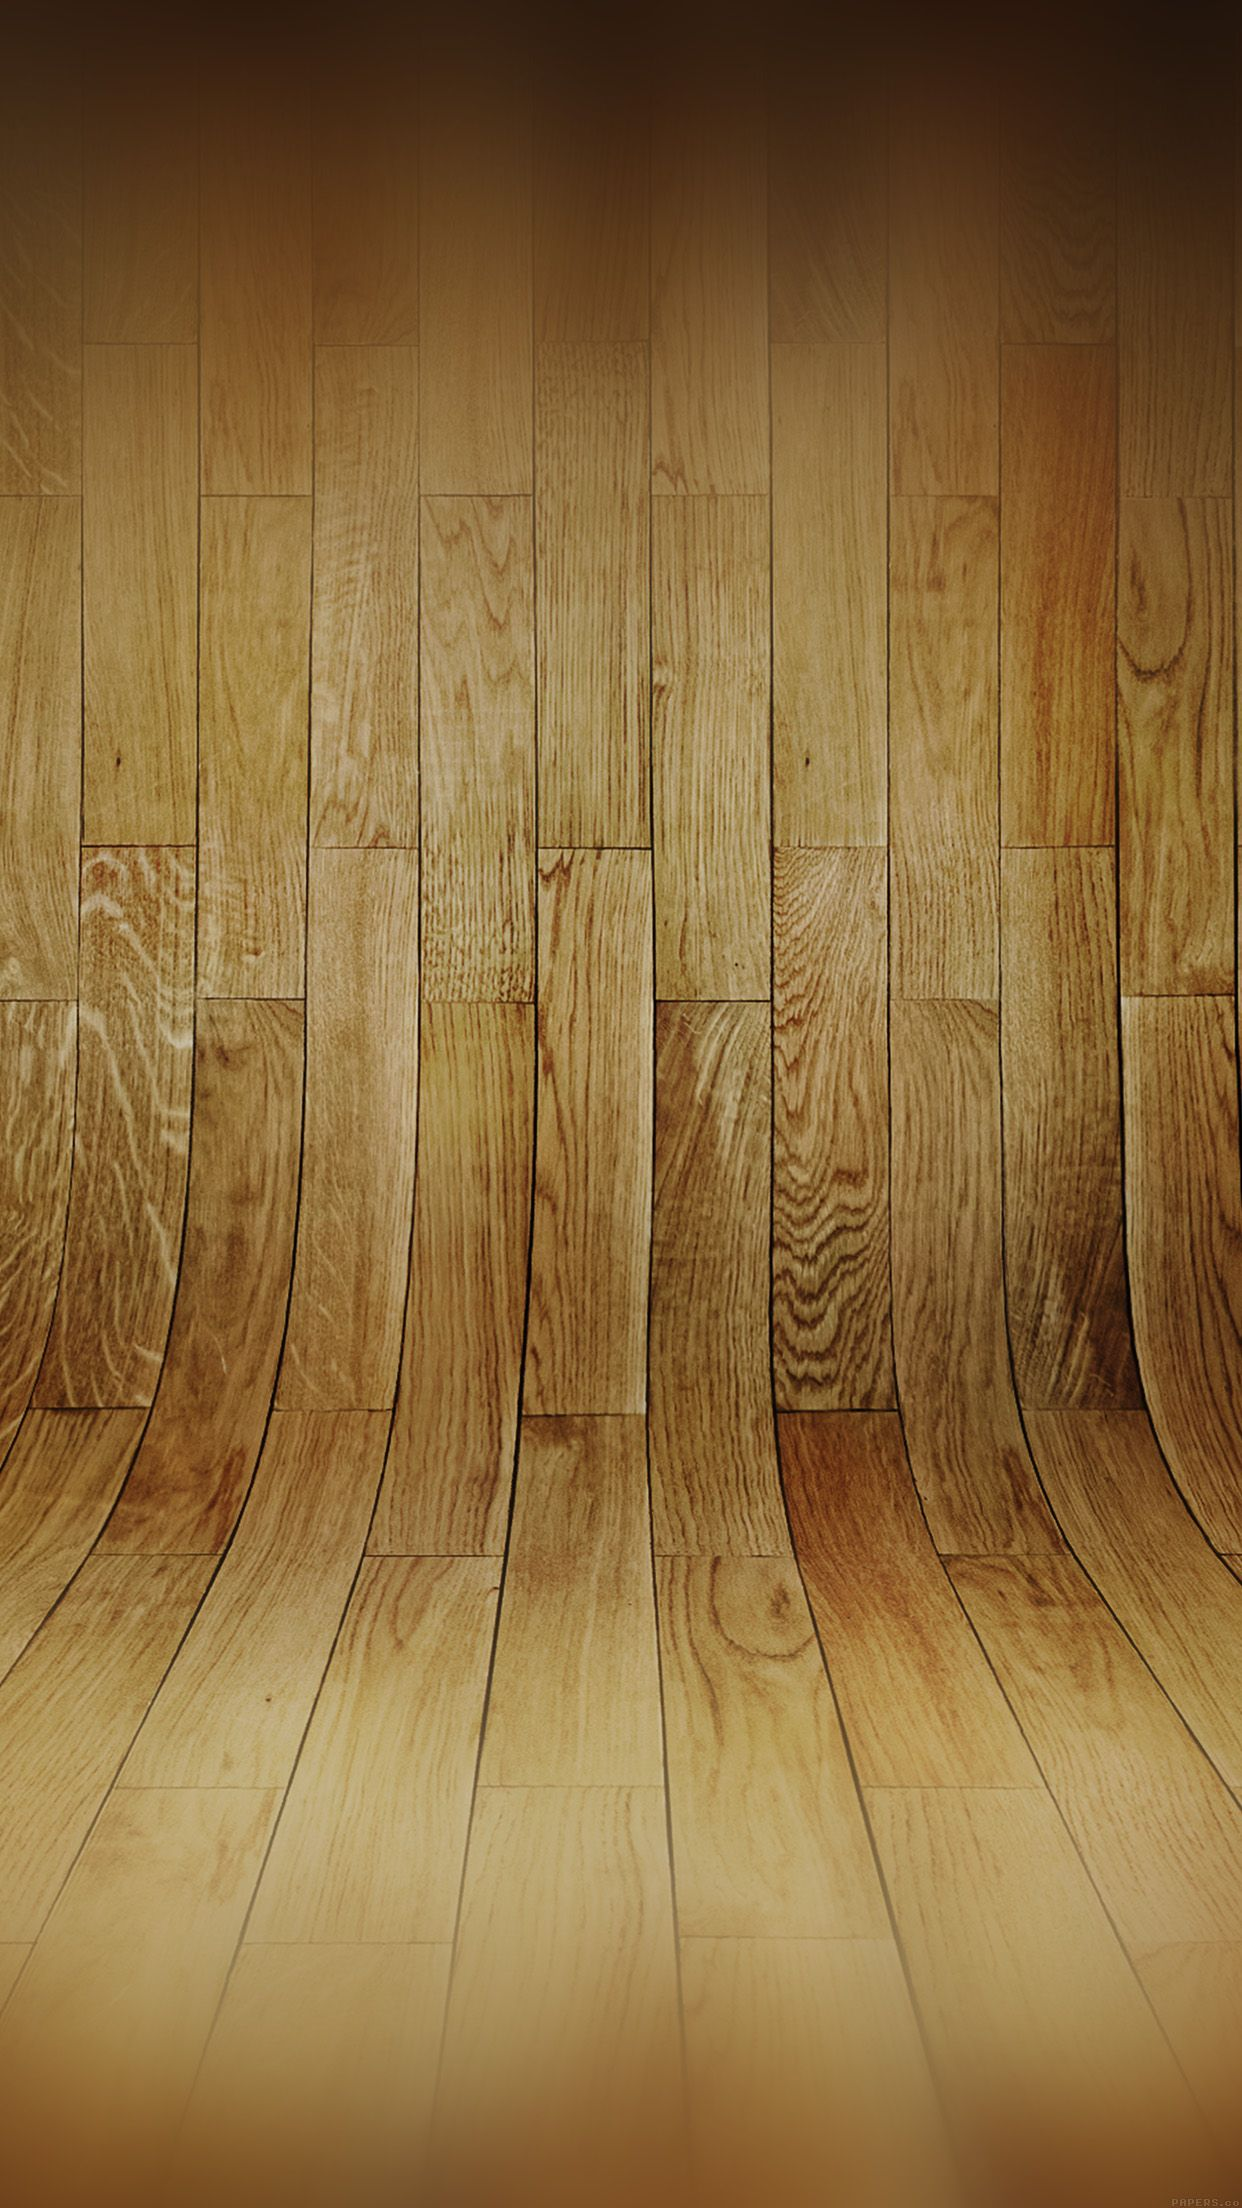 Curved 3D Wood Planks Texture IPhone 6 Plus HD Wallpaper